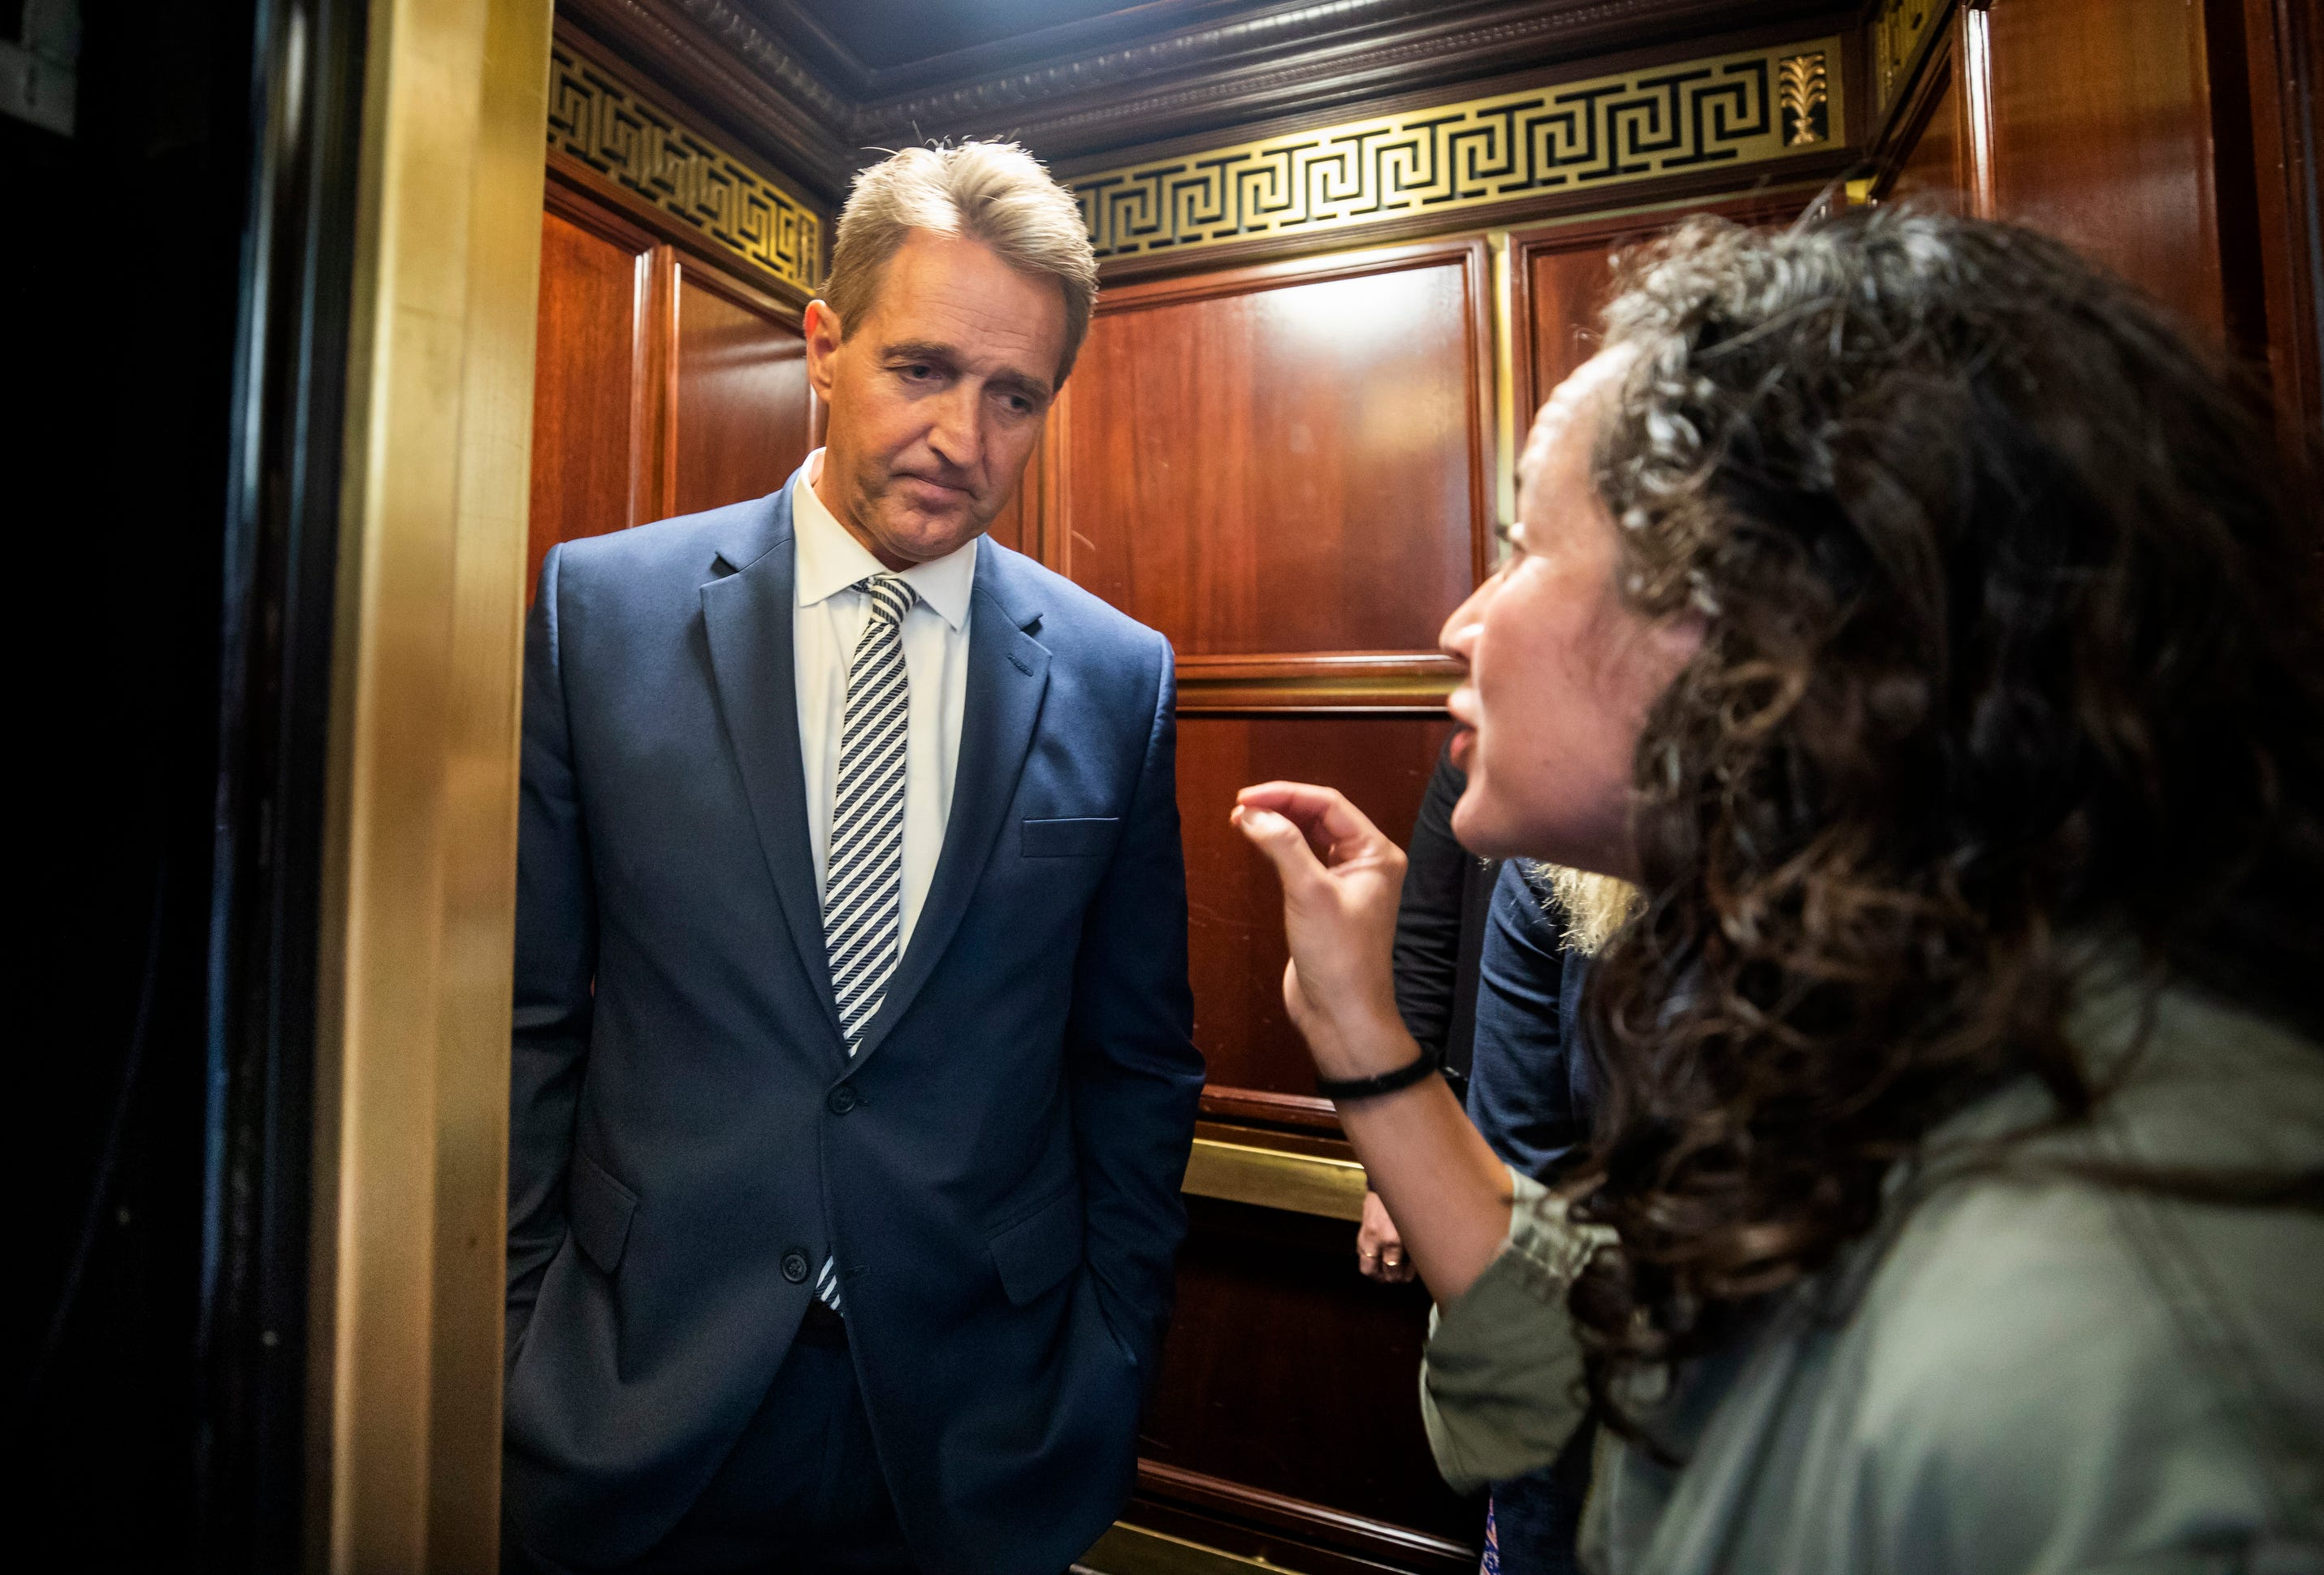 Ana Maria Archila, a survivor of a sexual assault, right, confronts Republican Senator from Arizona Jeff Flake in an elevator after Flake announced that he vote to confirm Supreme Court nominee Brett Kavanaugh in the Russell Senate Office Building in Washington, DC, on Friday.